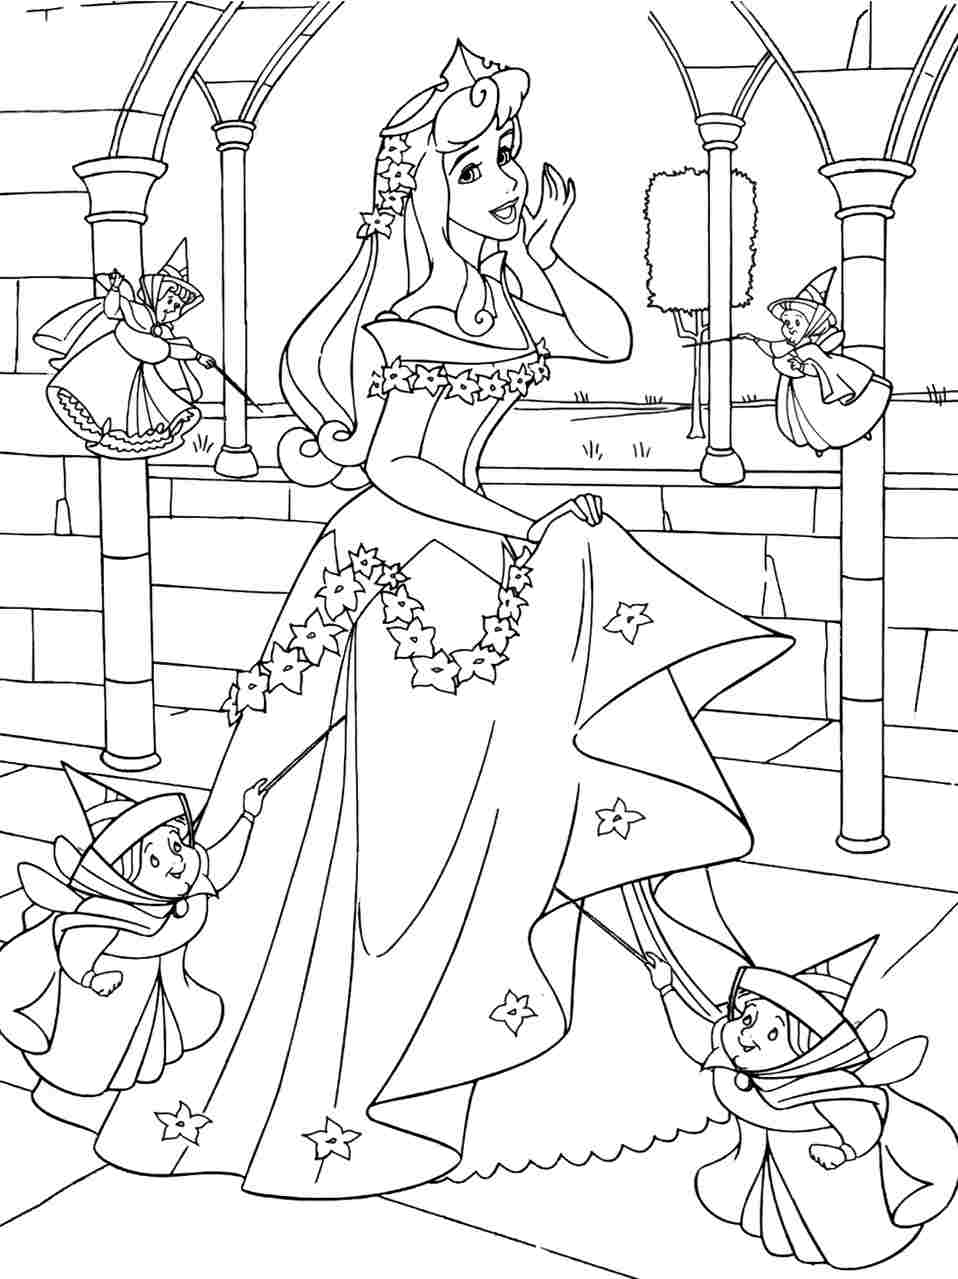 Sleeping Beauty Coloring Pages Games Coloring Page